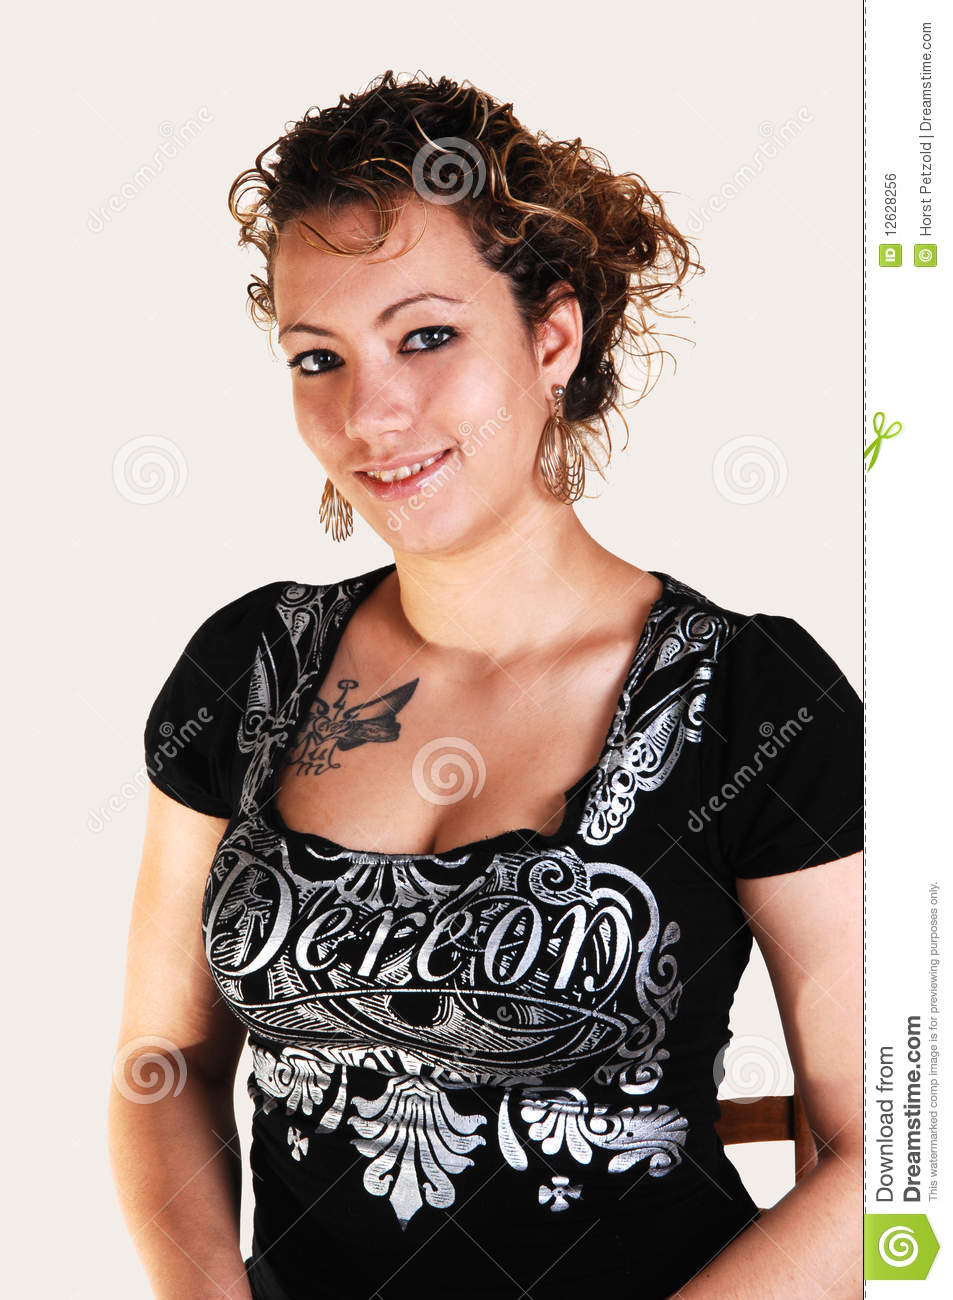 Portrait Of A Pretty Girl. Stock Photo. Image Of Caucasian